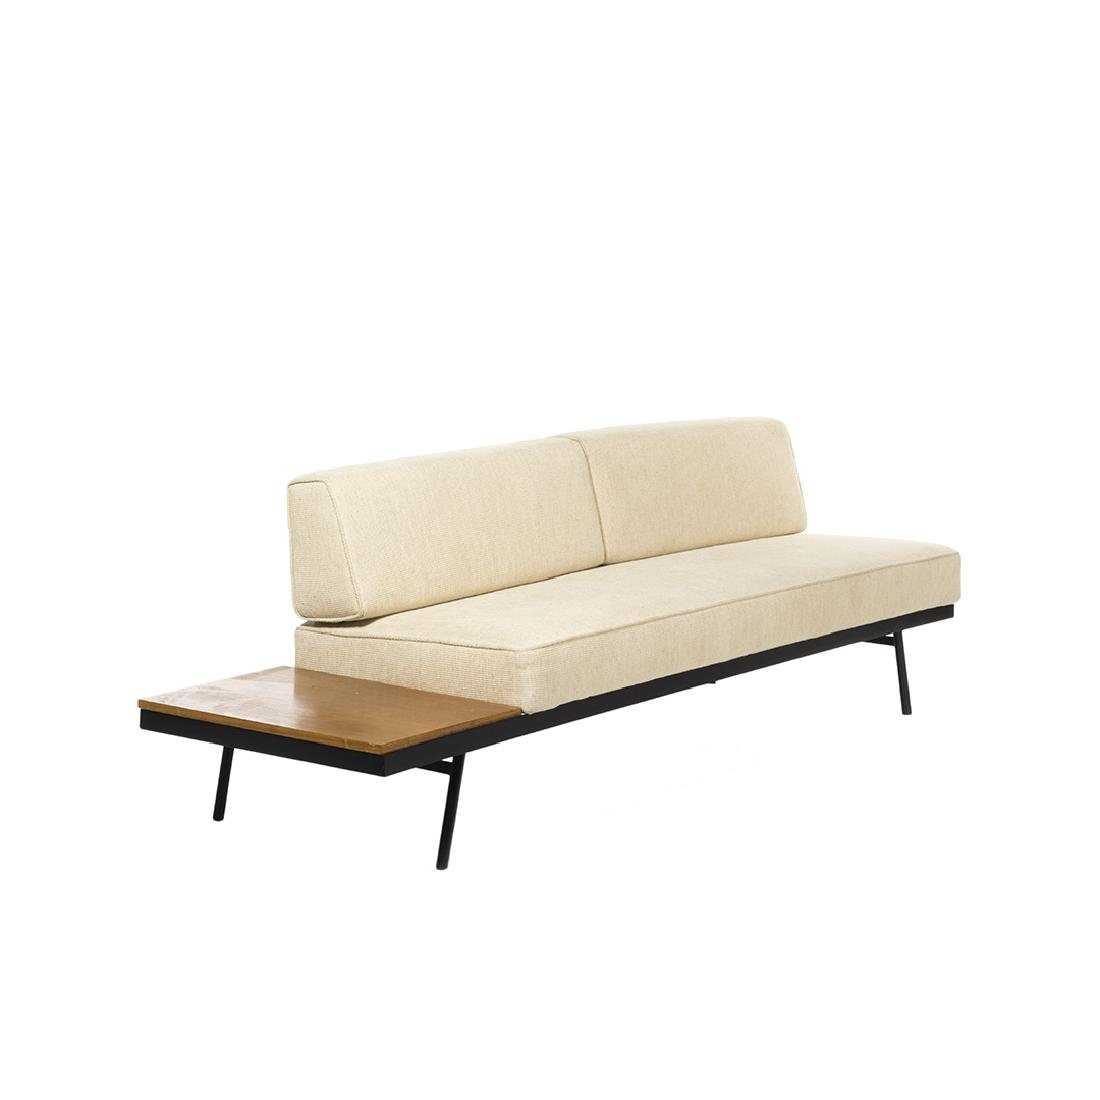 Bates and Gregory Sofa